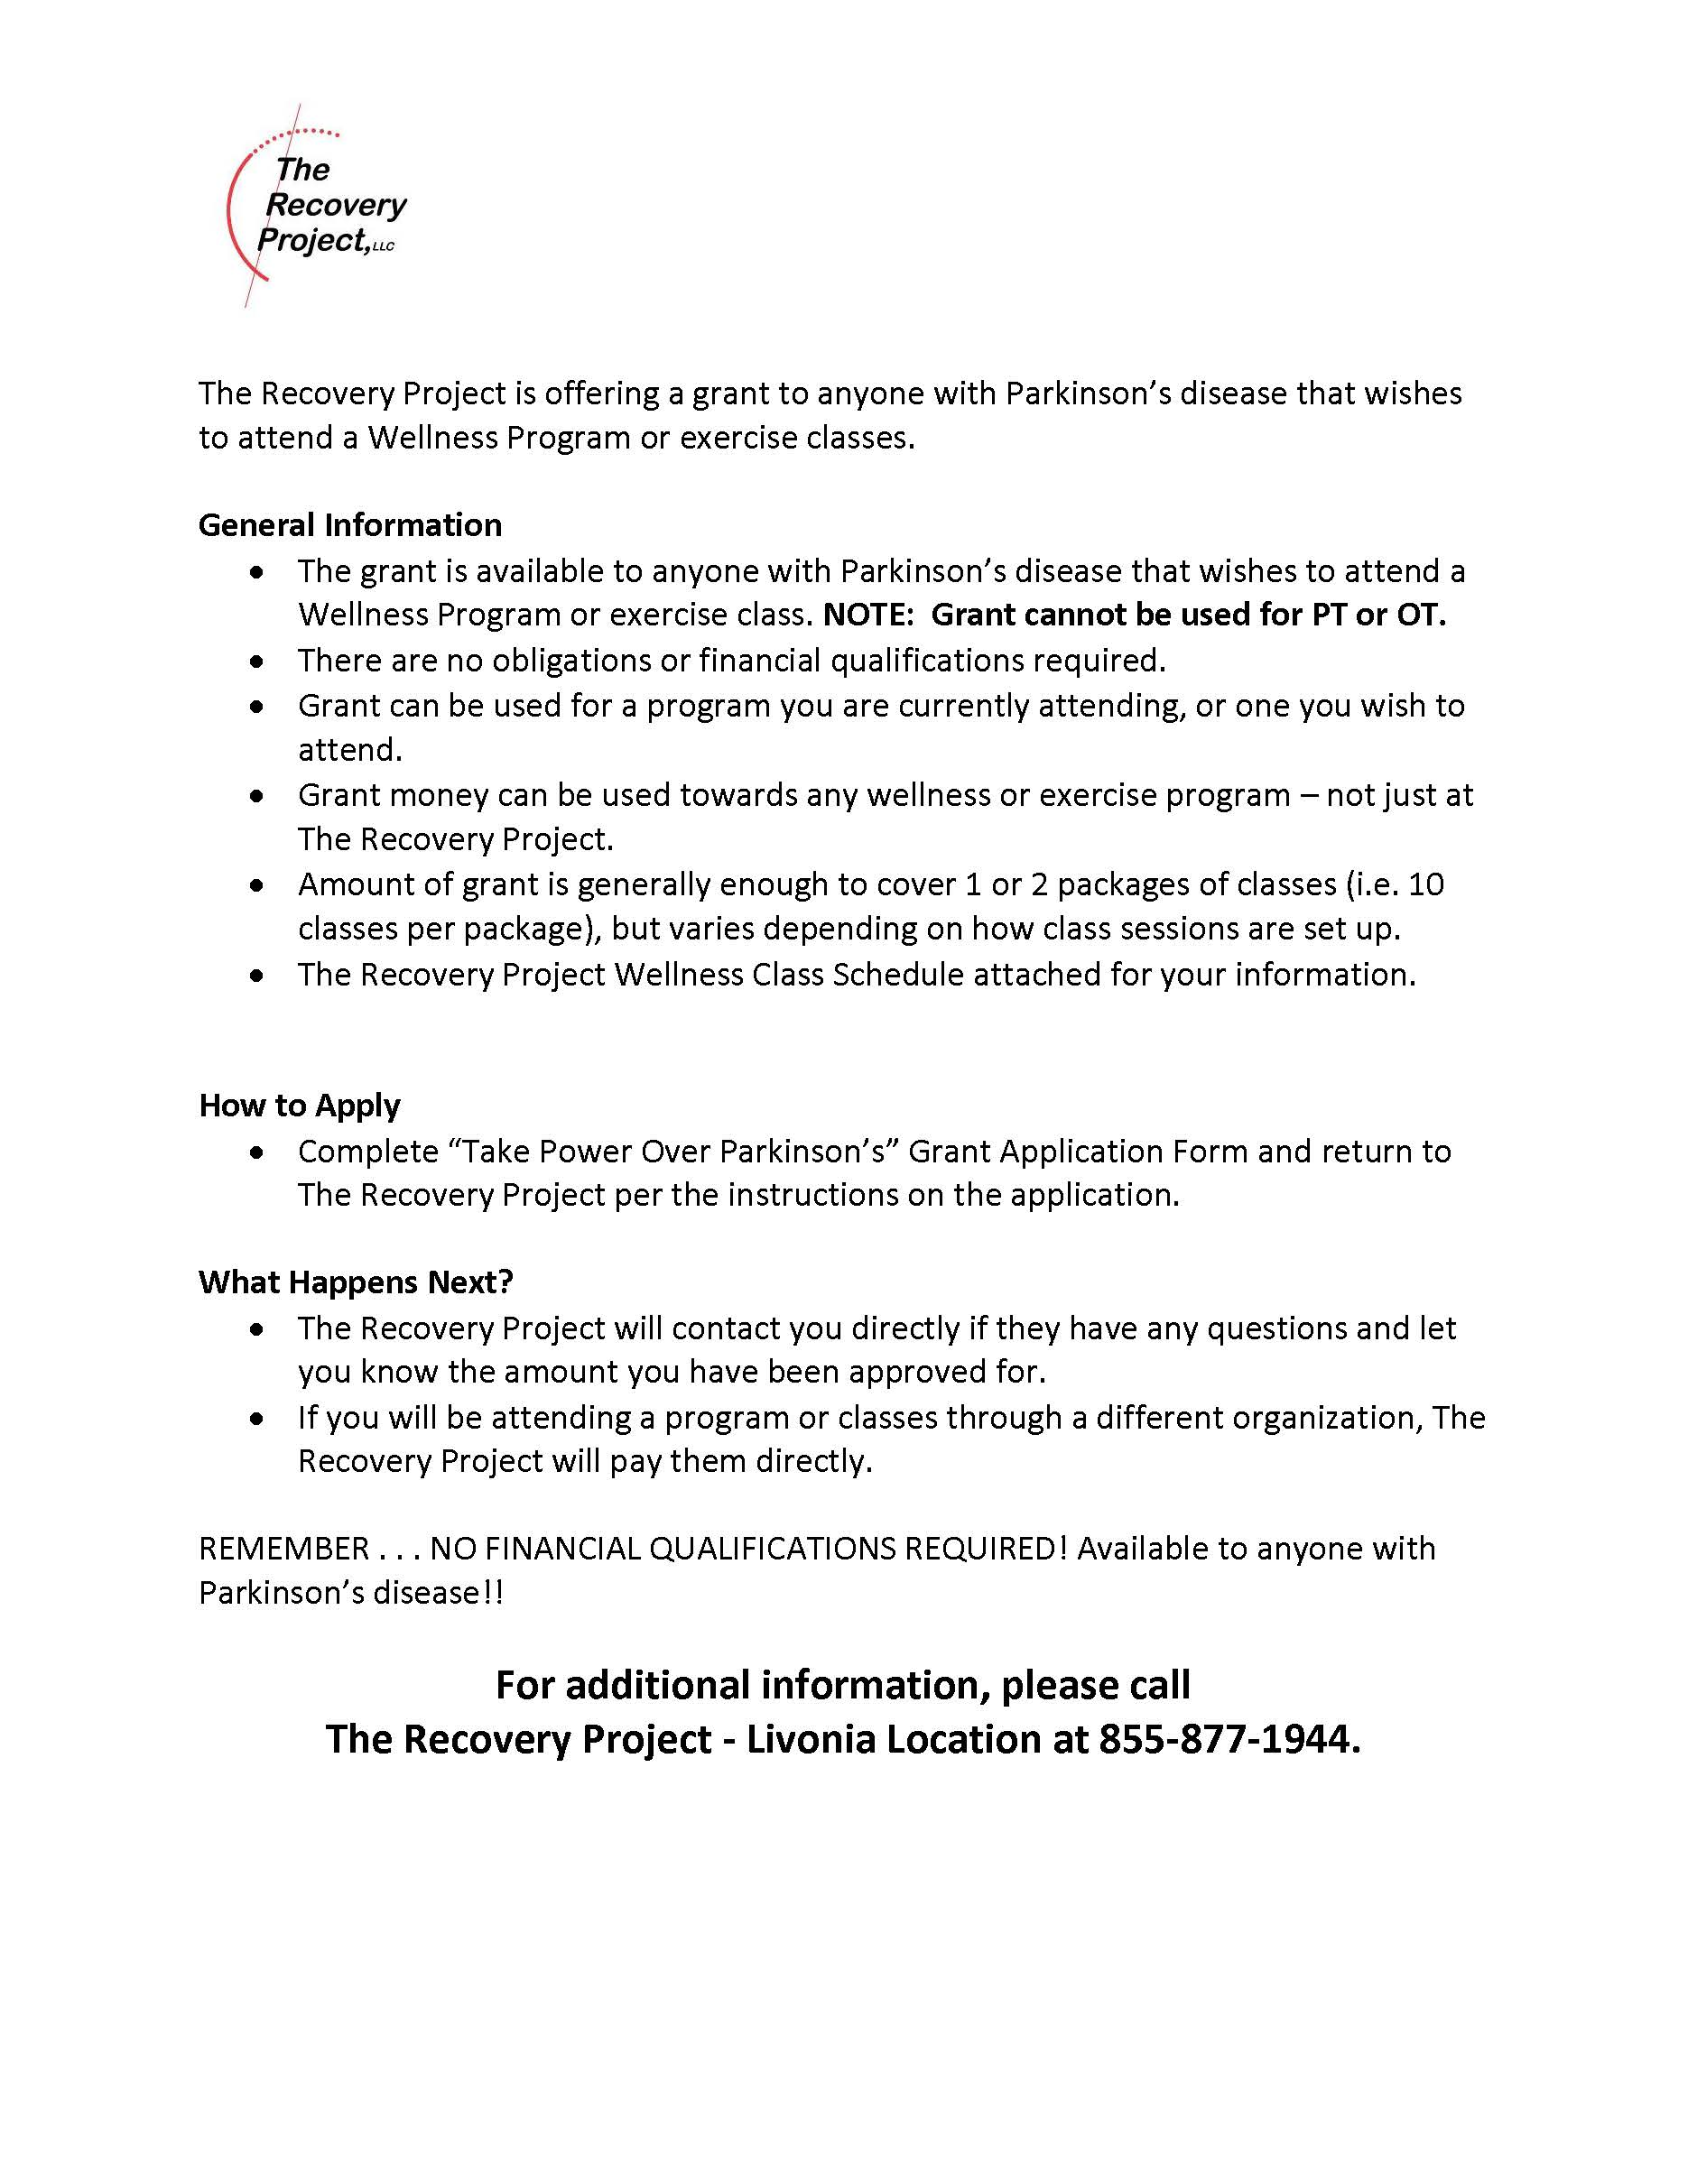 The Recovery Project Exercise Grant Jan 2019 Page 1